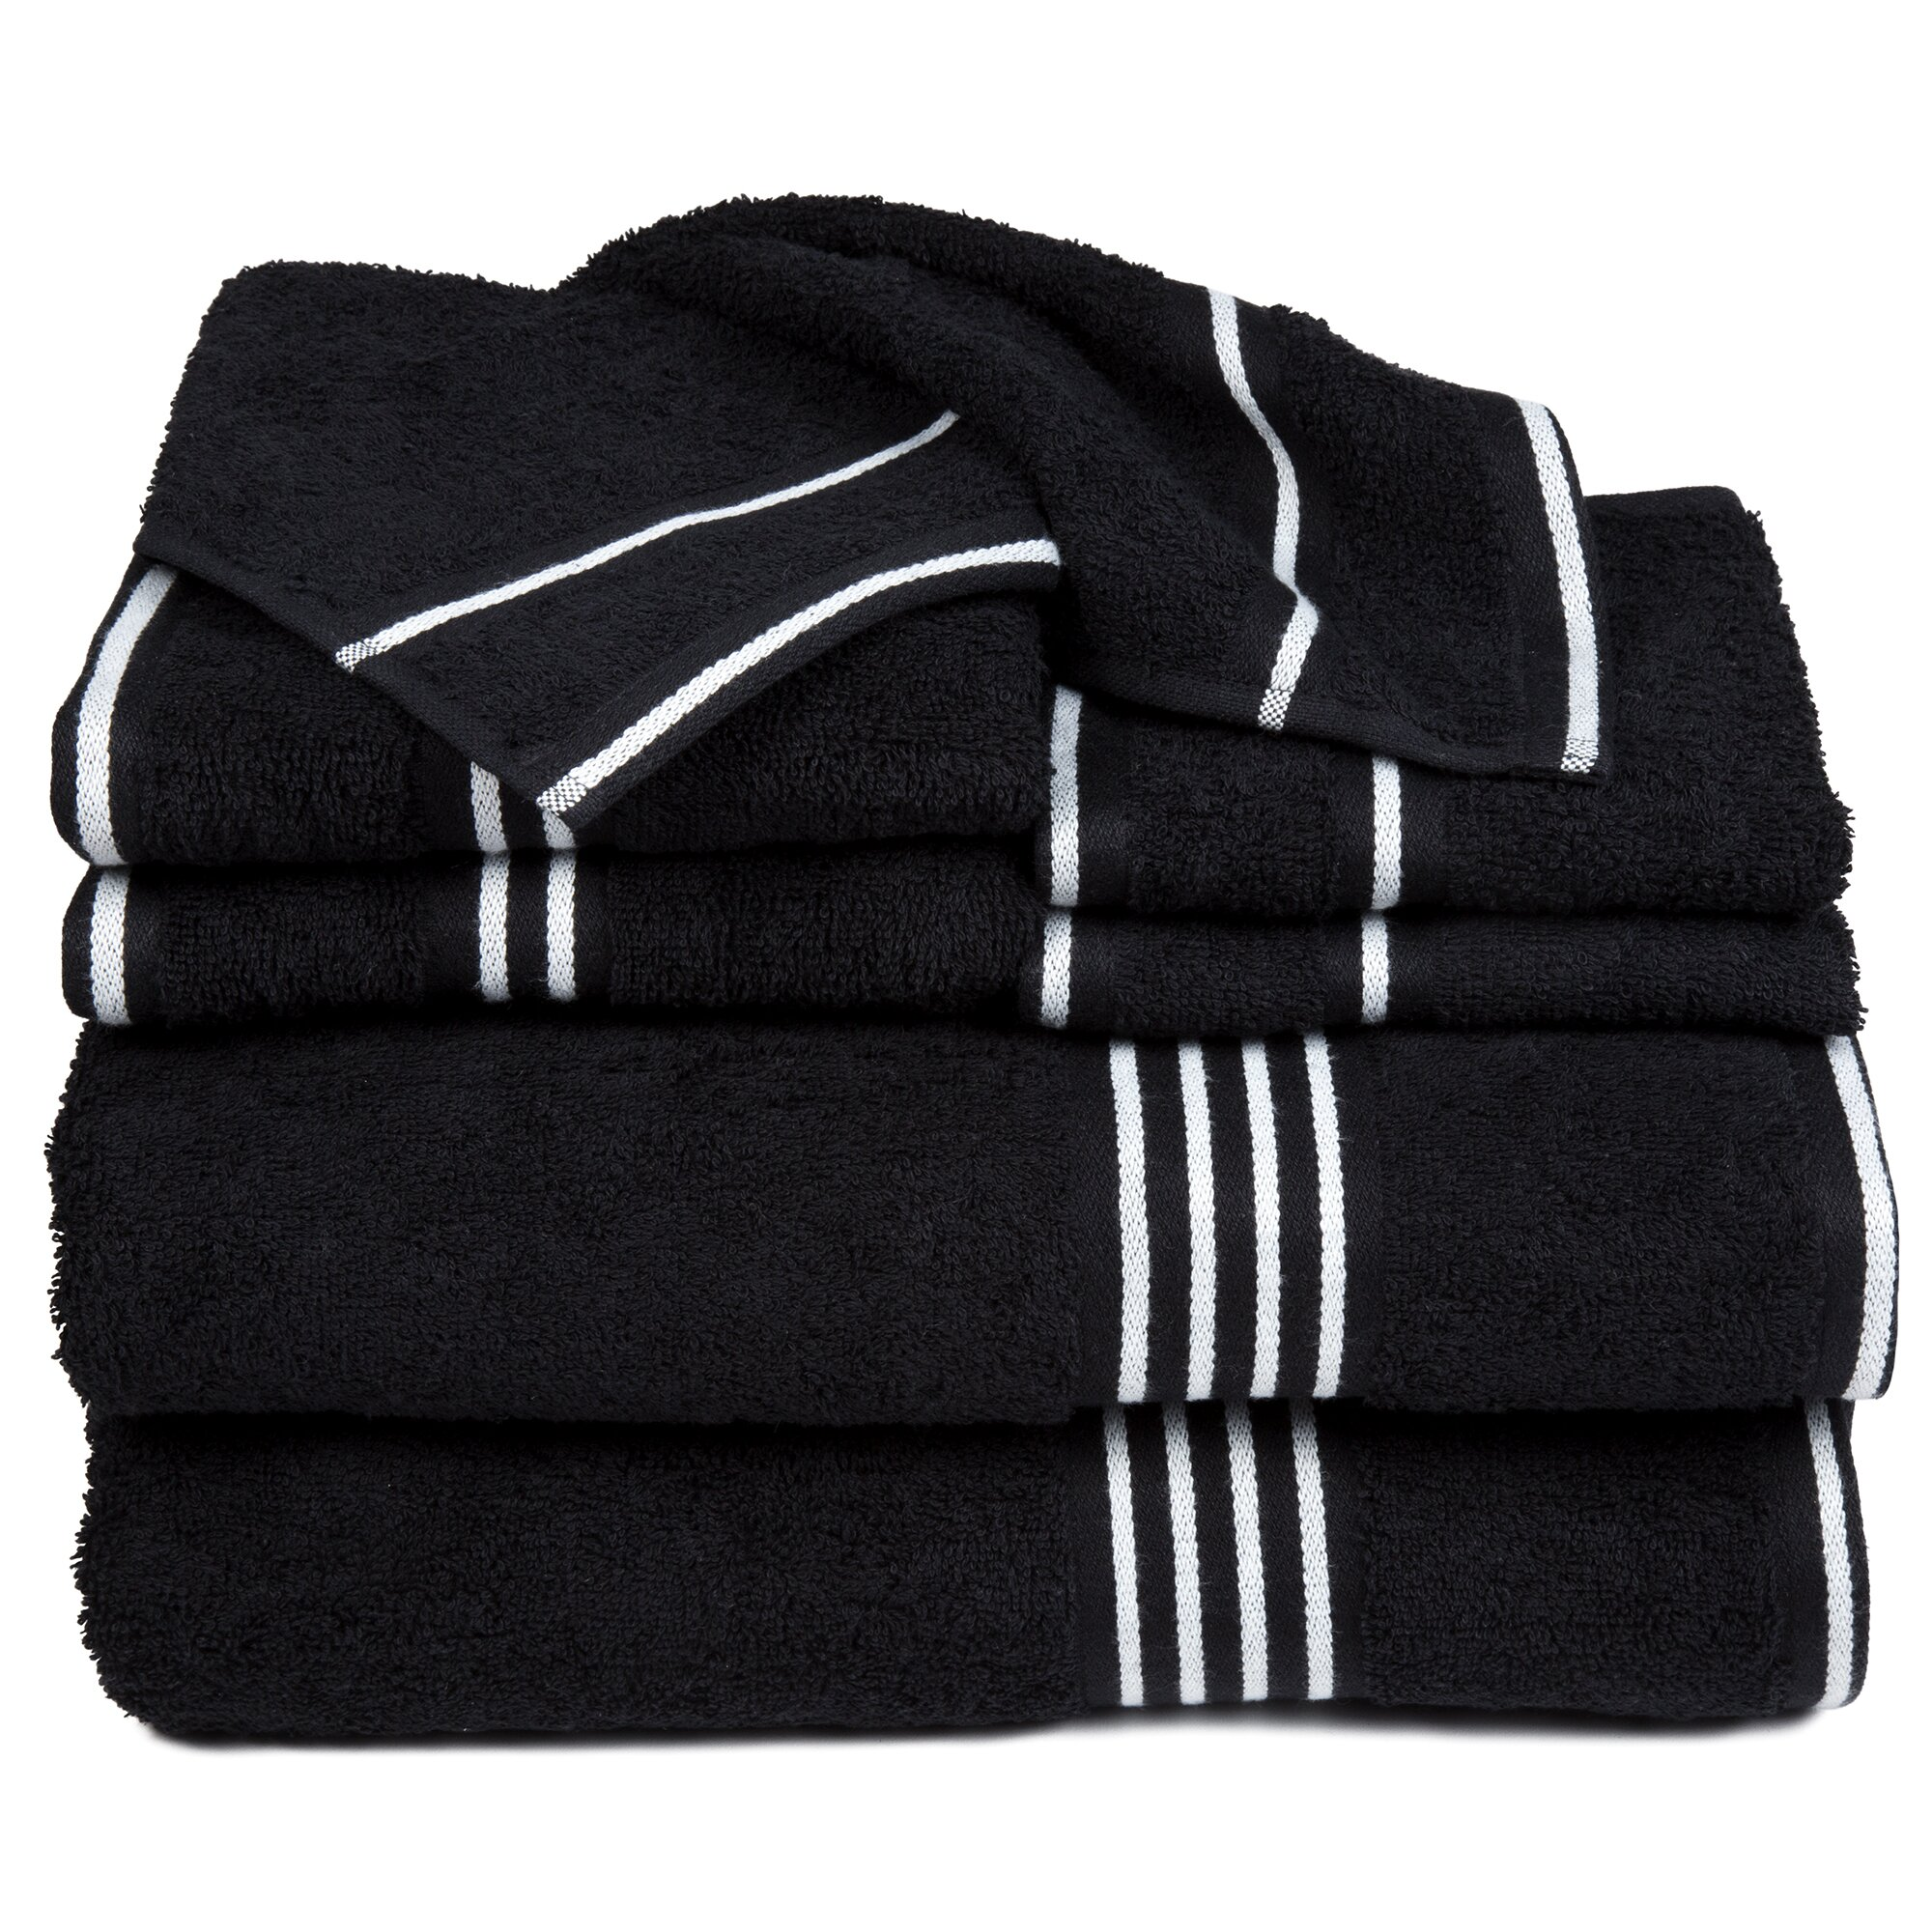 Decorative Hand Towels For Powder Room Alcott Hill Egyptian Quality Cotton 8 Piece Towel Set Reviews